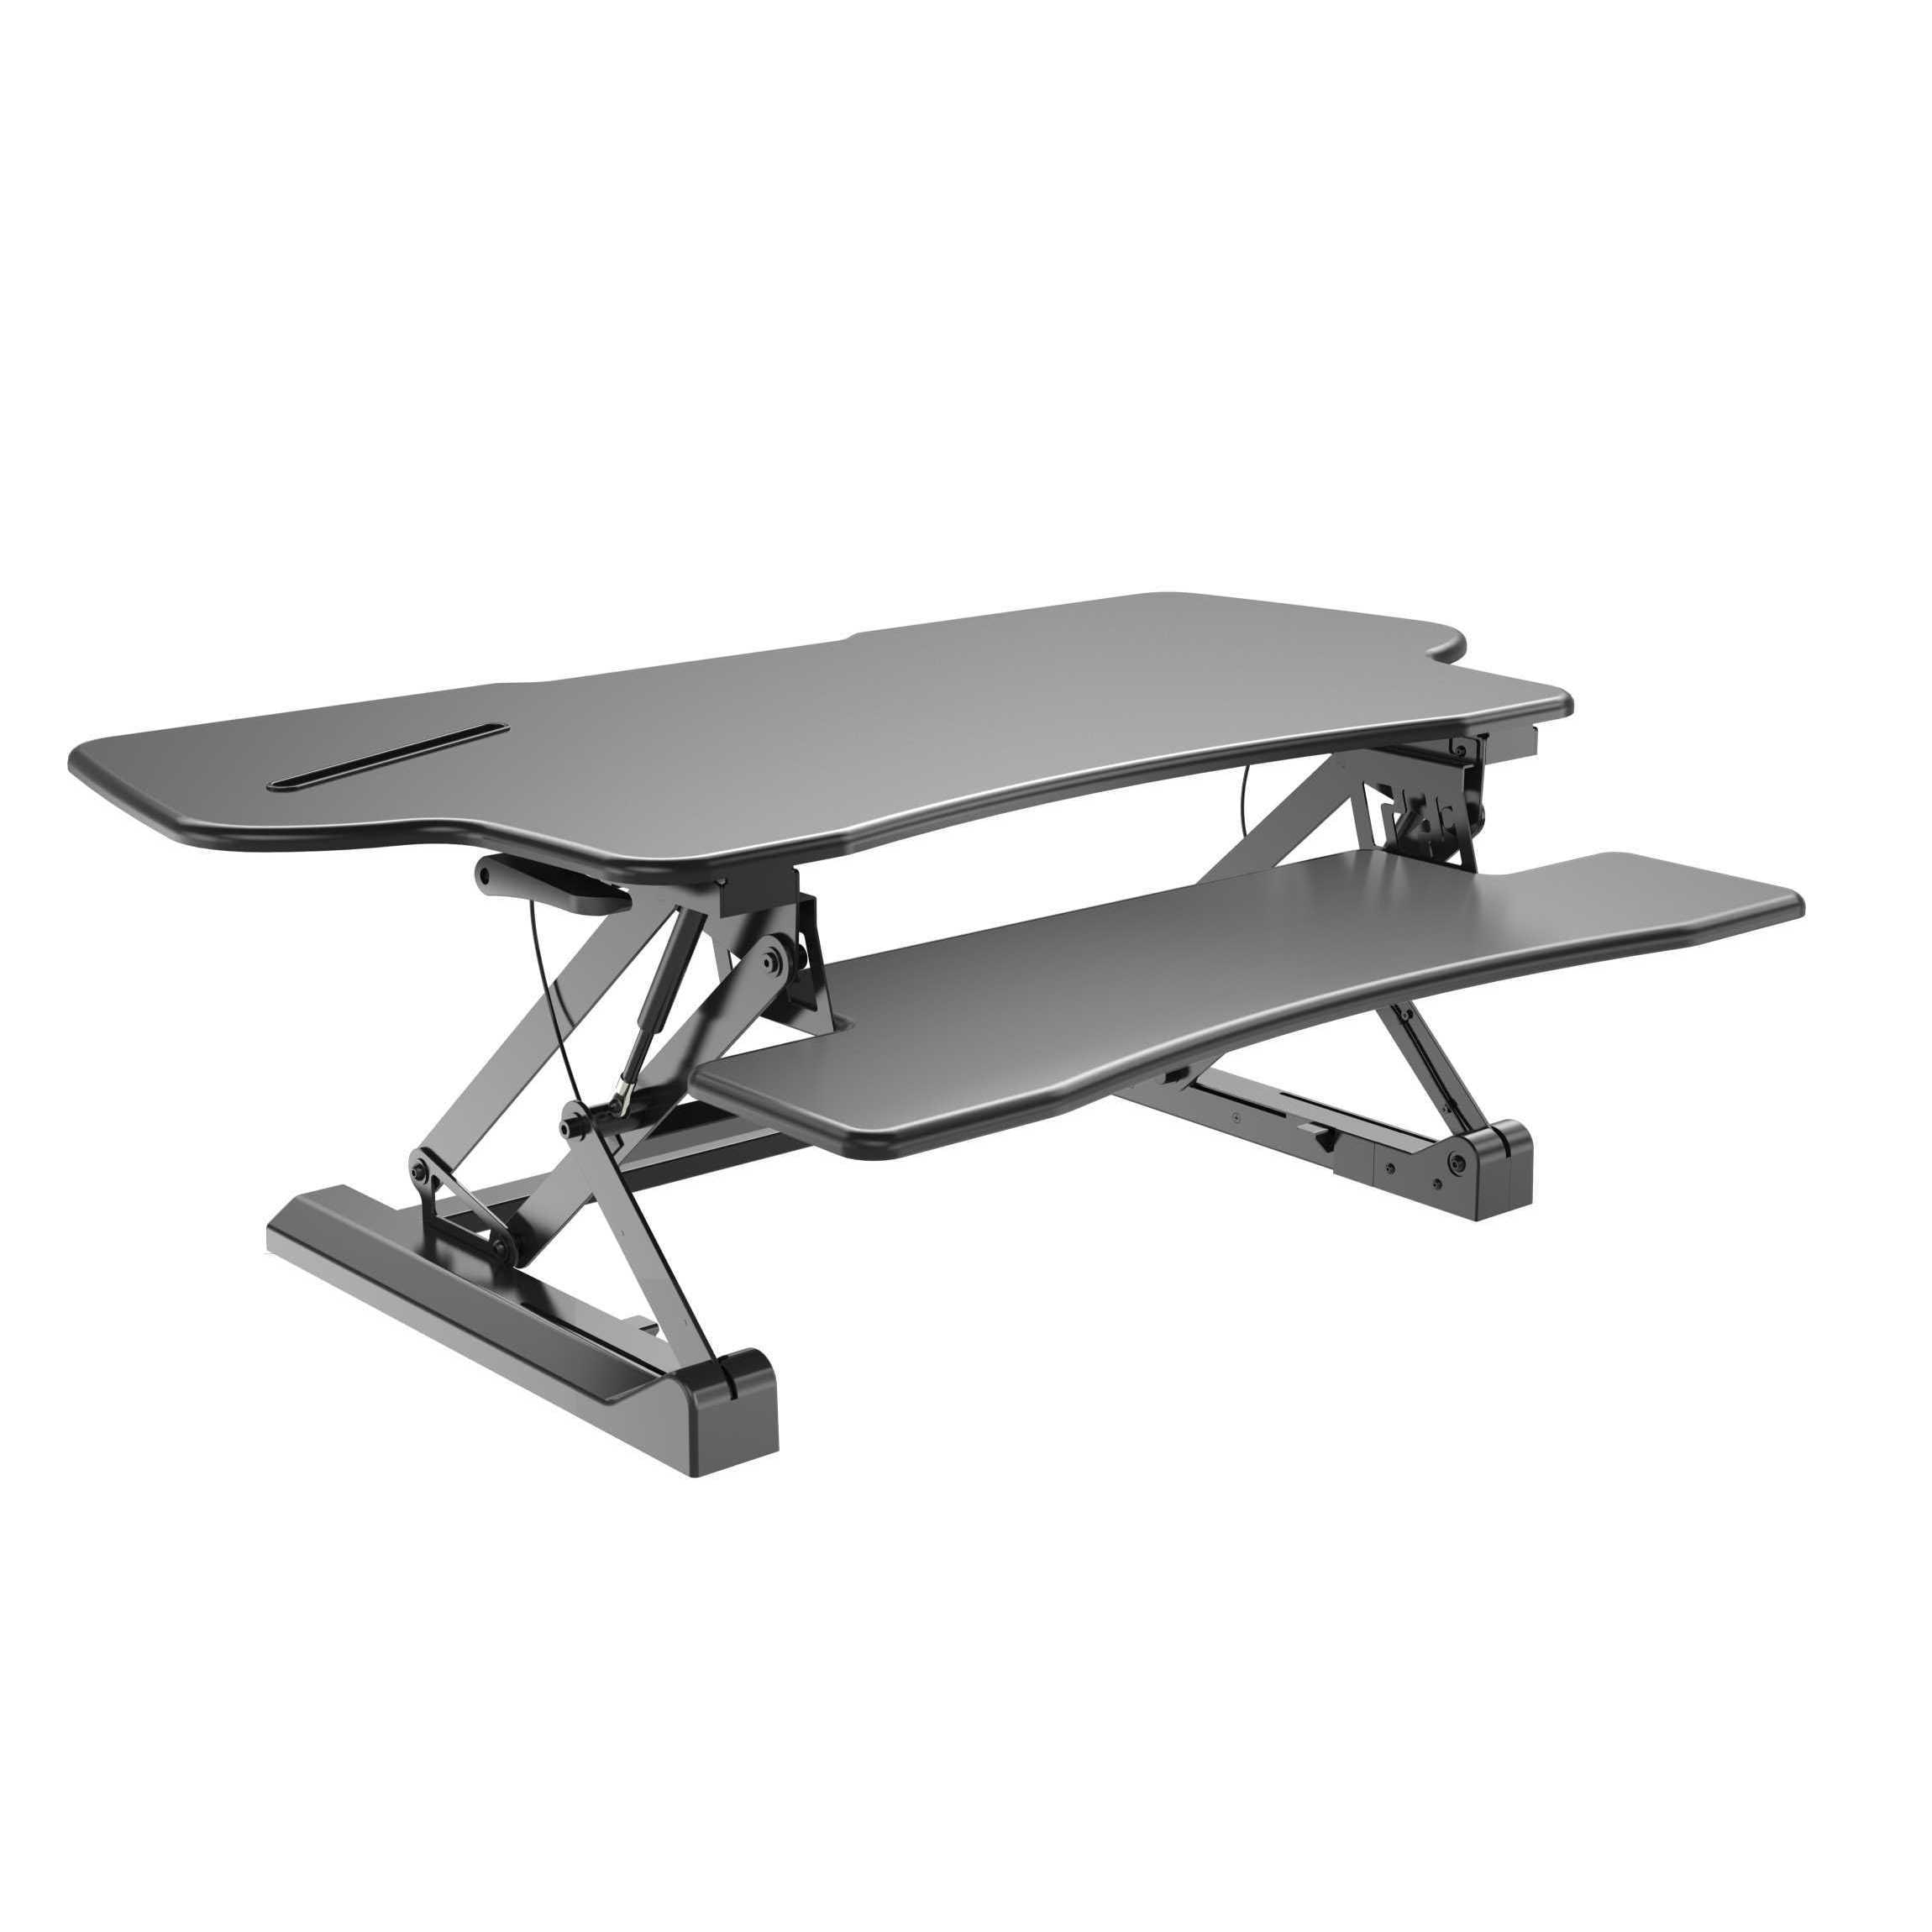 sit adjustable detail standing riser gas to spring tabletop height desk